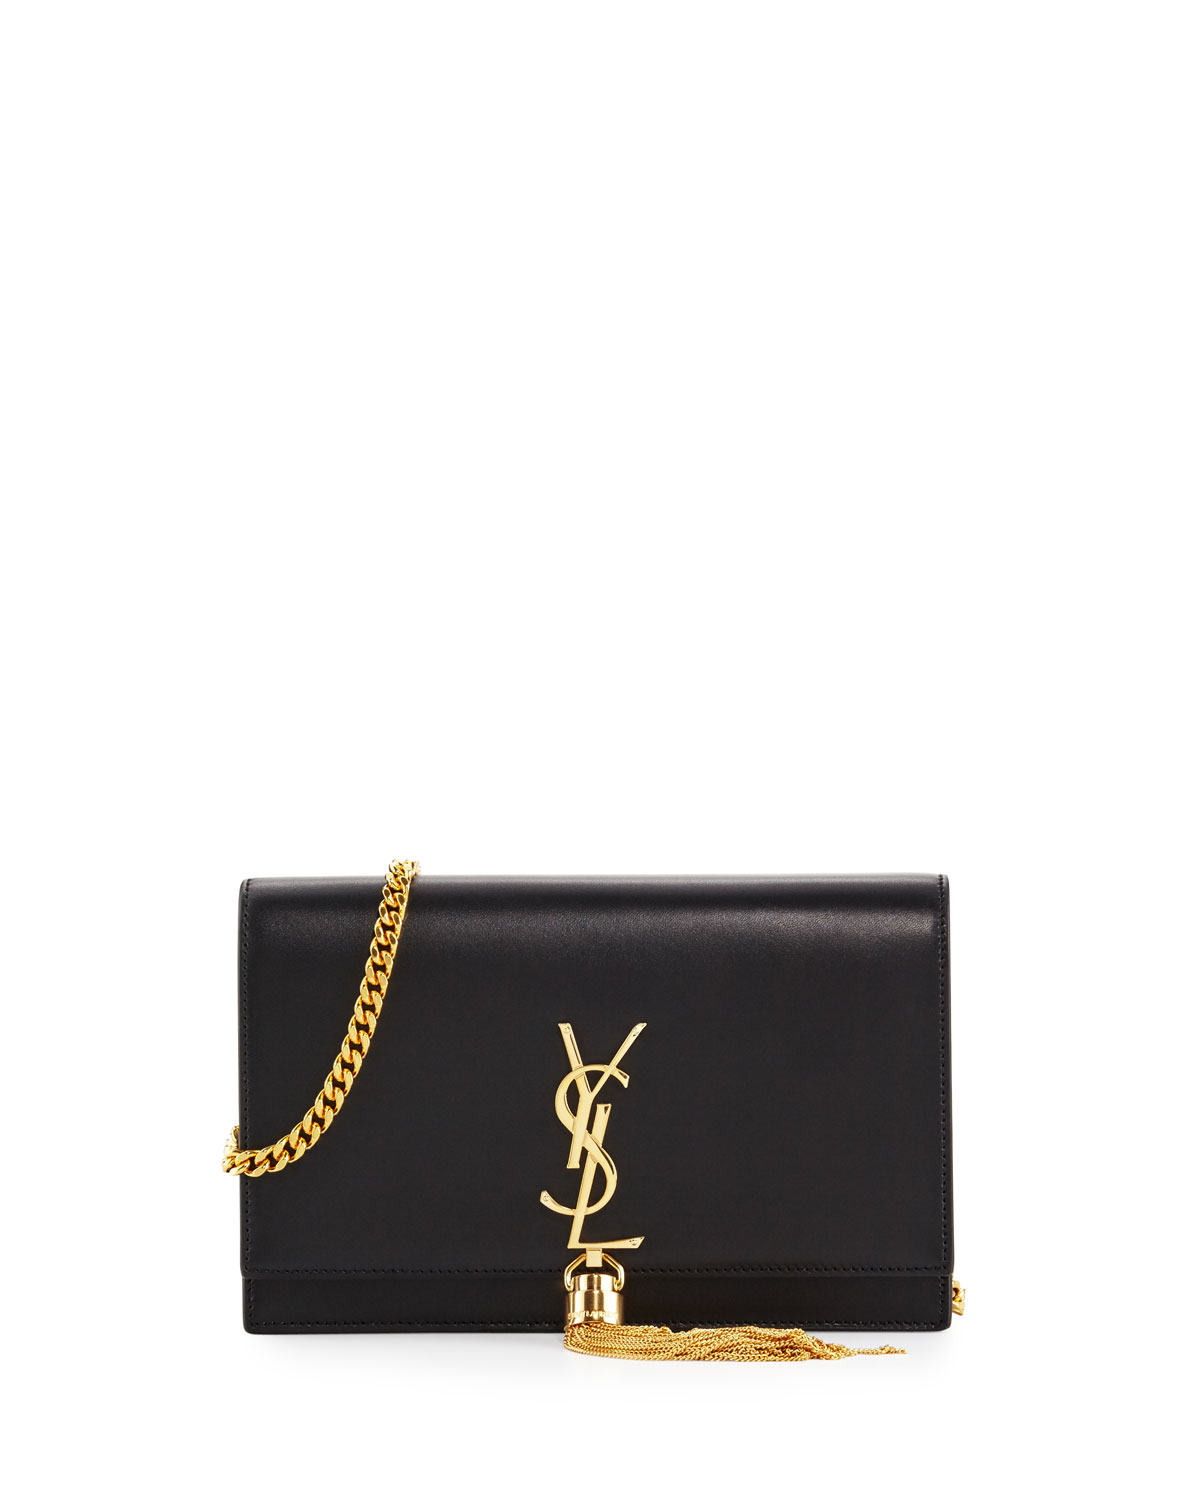 Saint Laurent Kate Monogram YSL Tassel Chain Wallet  b505a99bc1287